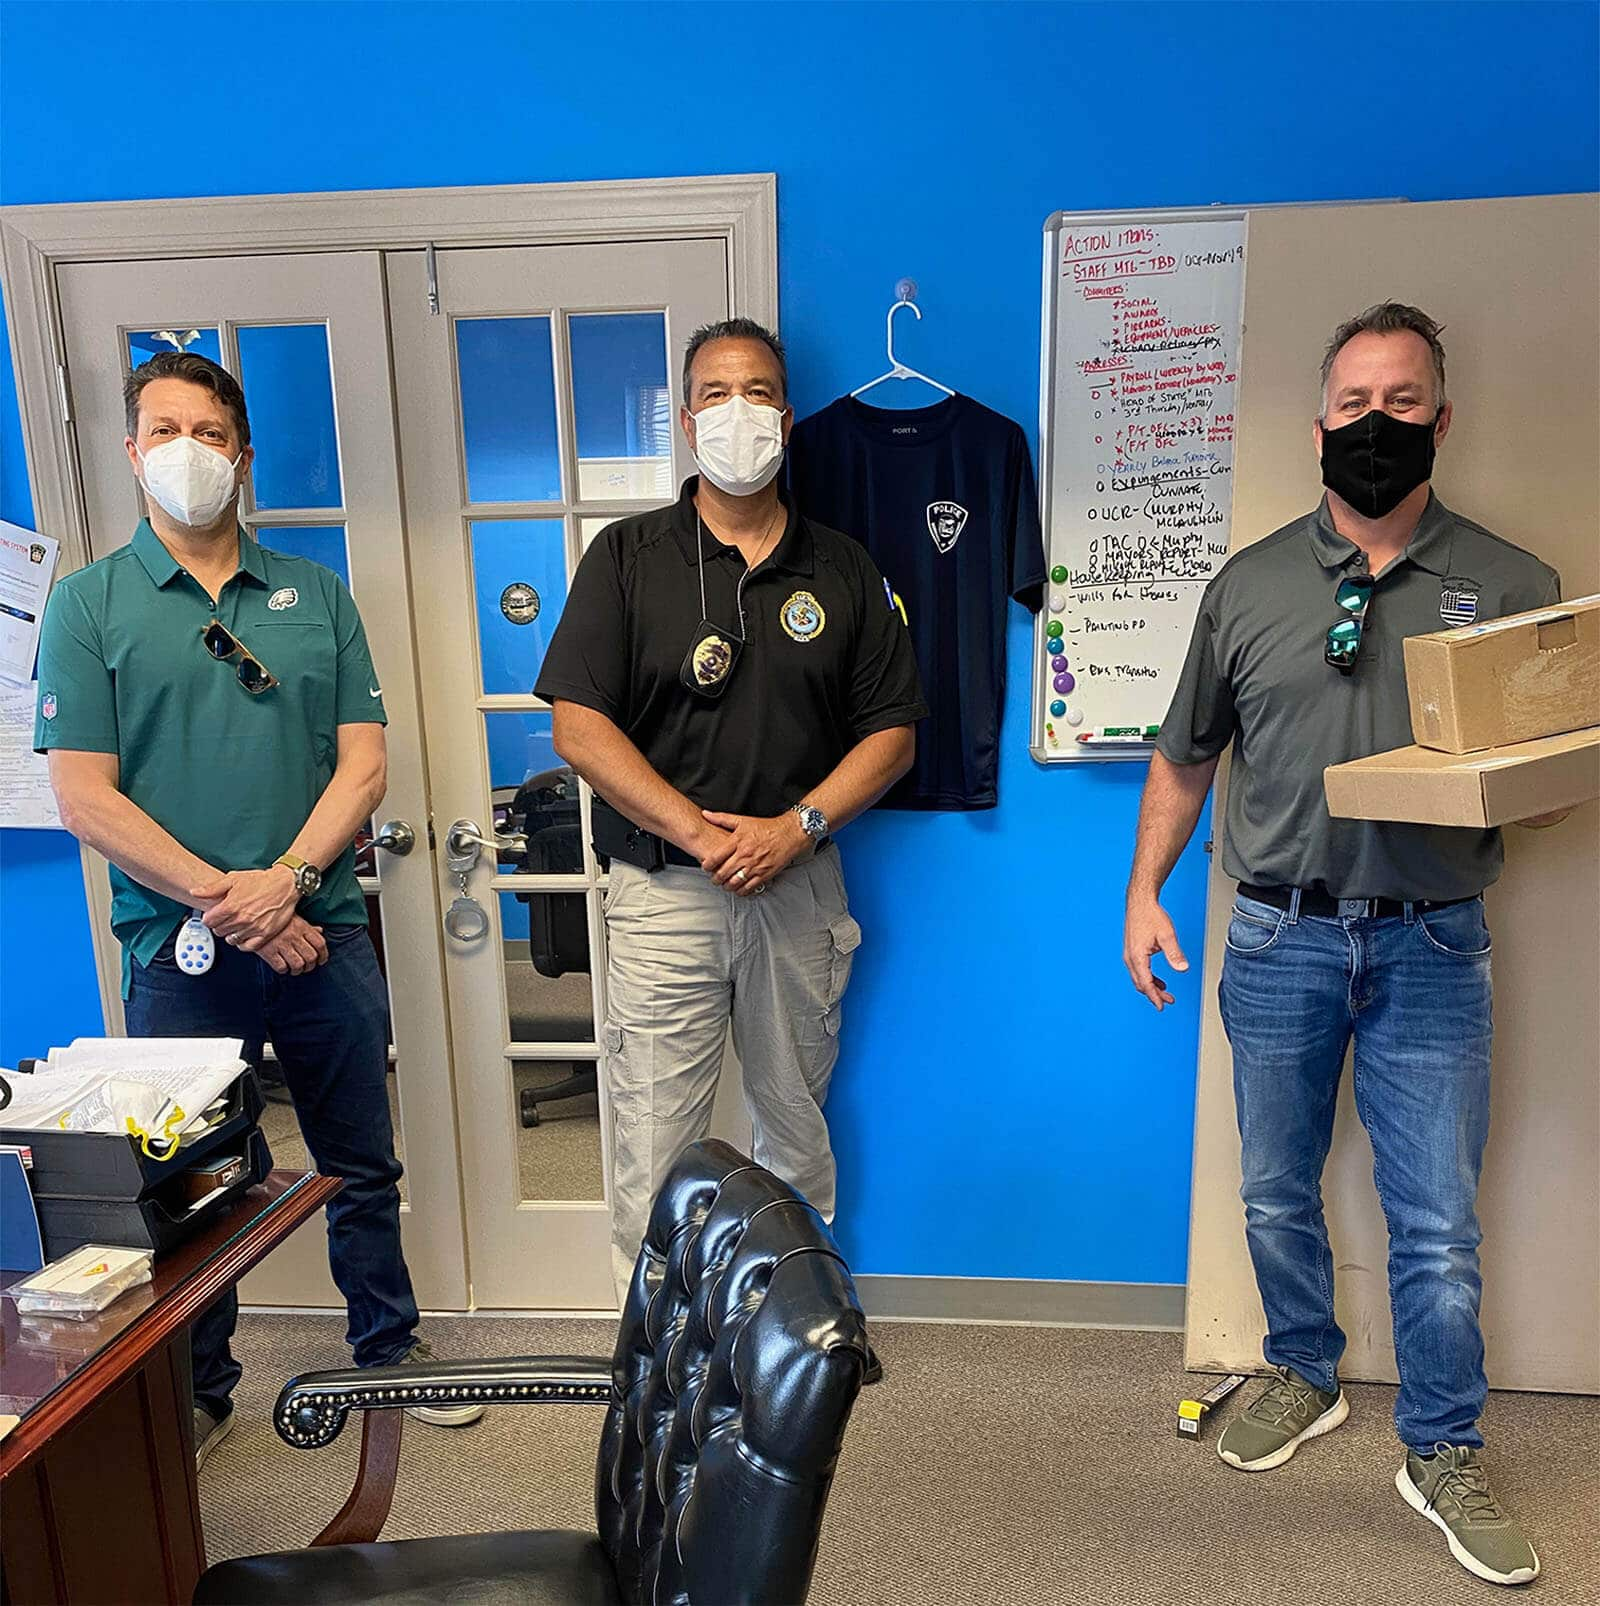 FUSION PPE DONATES CRITICAL PERSONAL PROTECTIVE EQUIPMENT